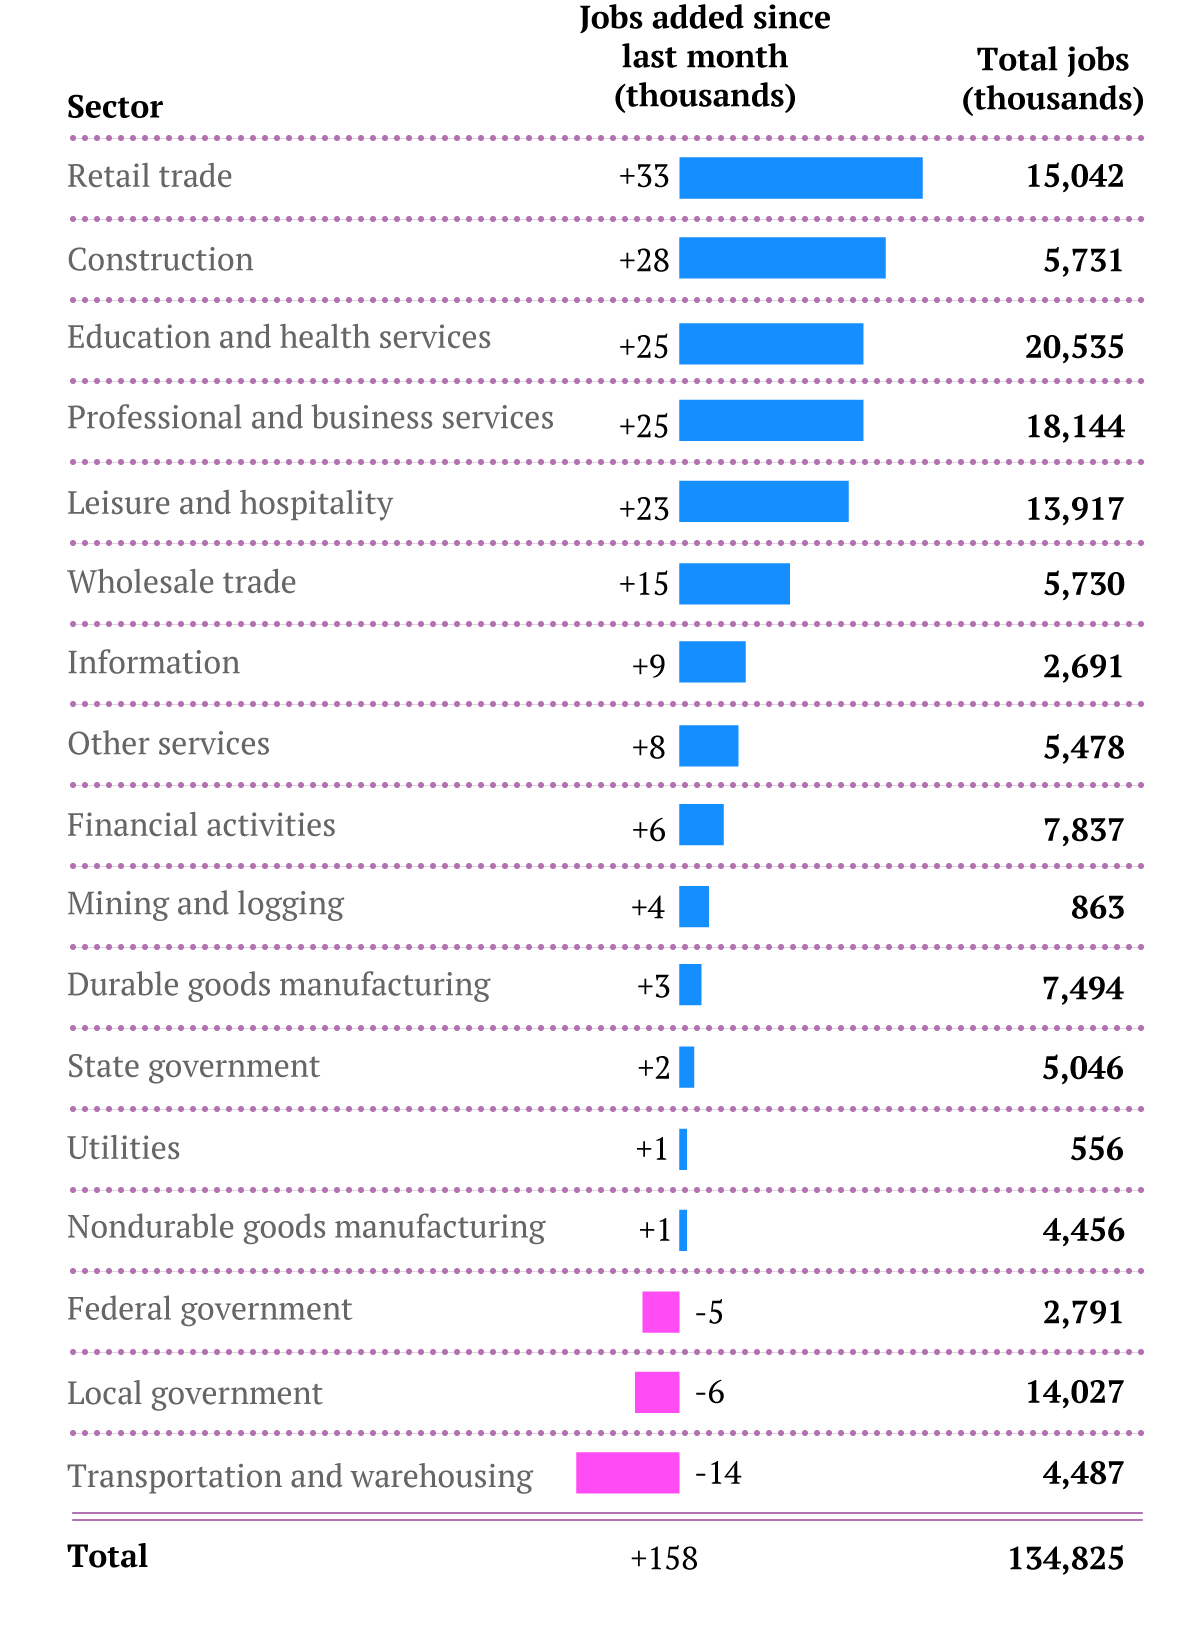 Jan. jobs by sector 2013